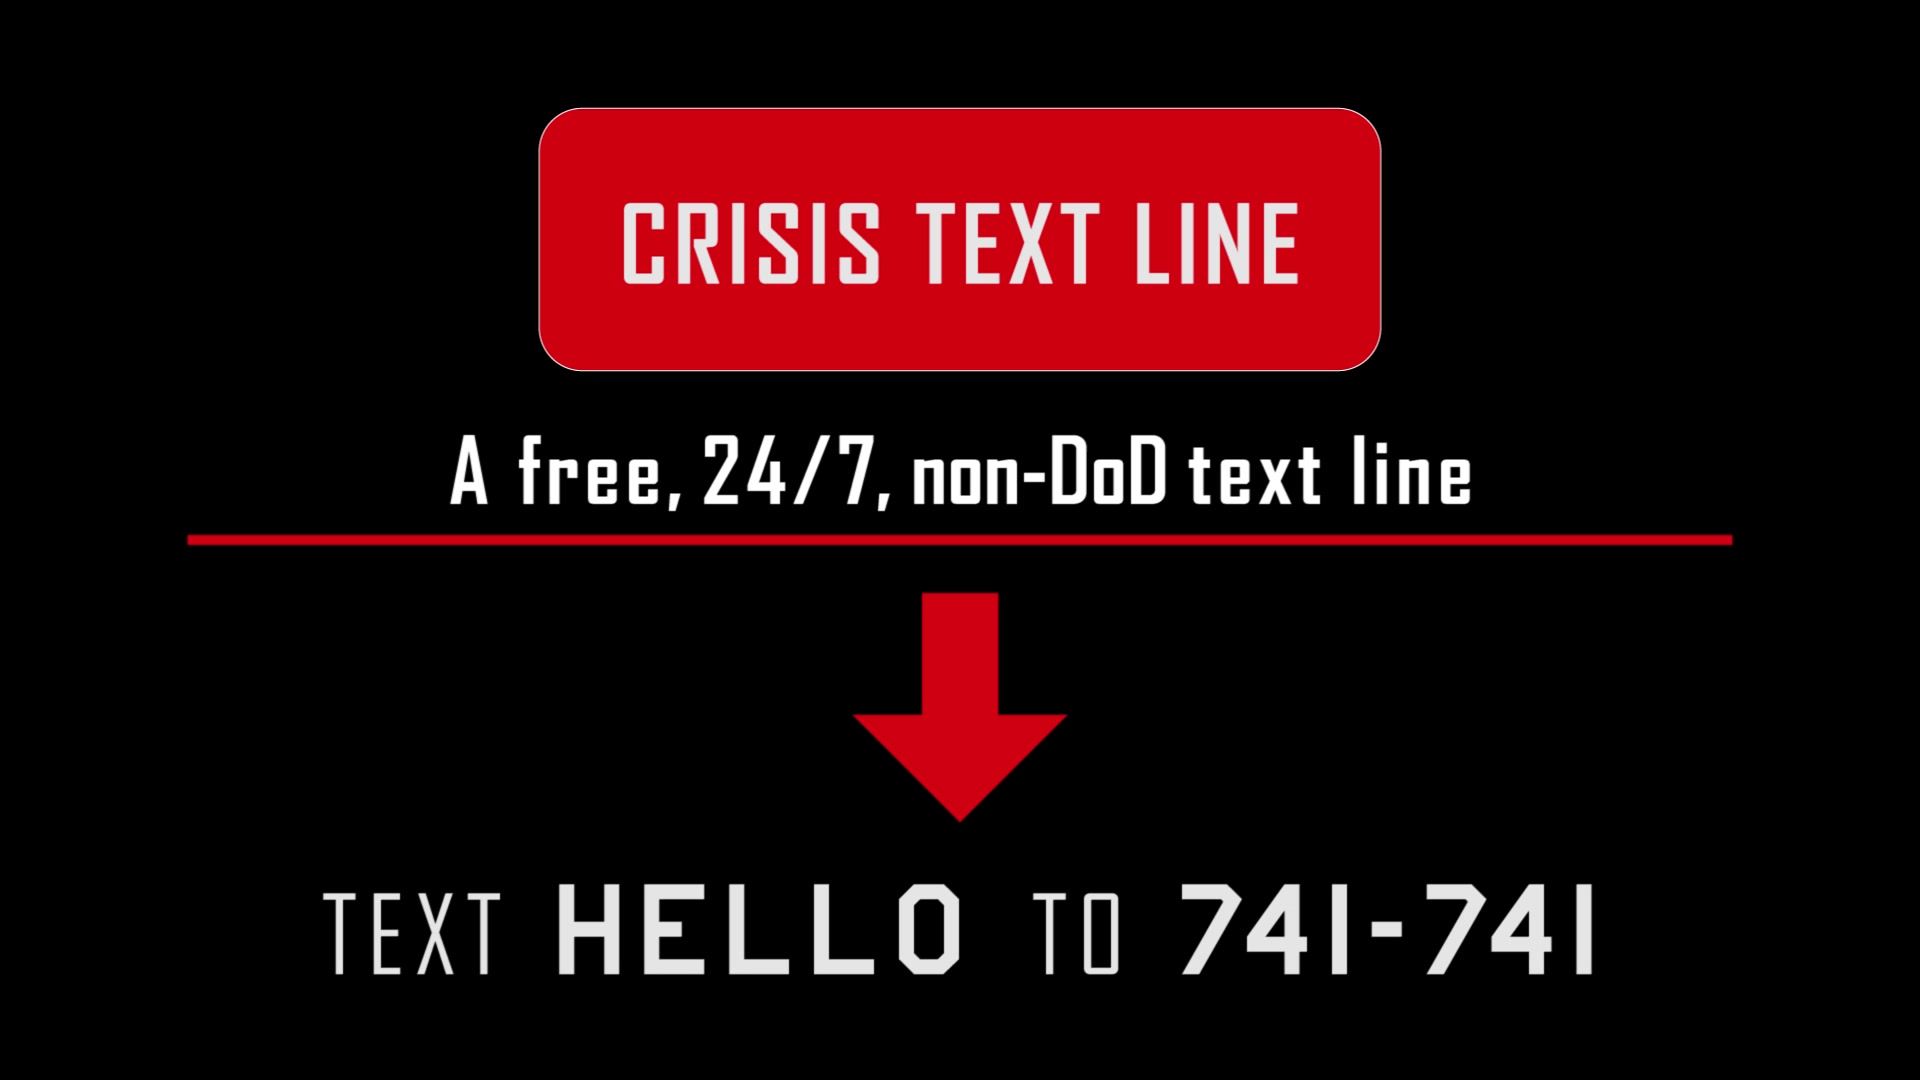 This video spot was made to remind service members of a free, non-DOD text hotline that is available 24/7 for any kind of emergency.